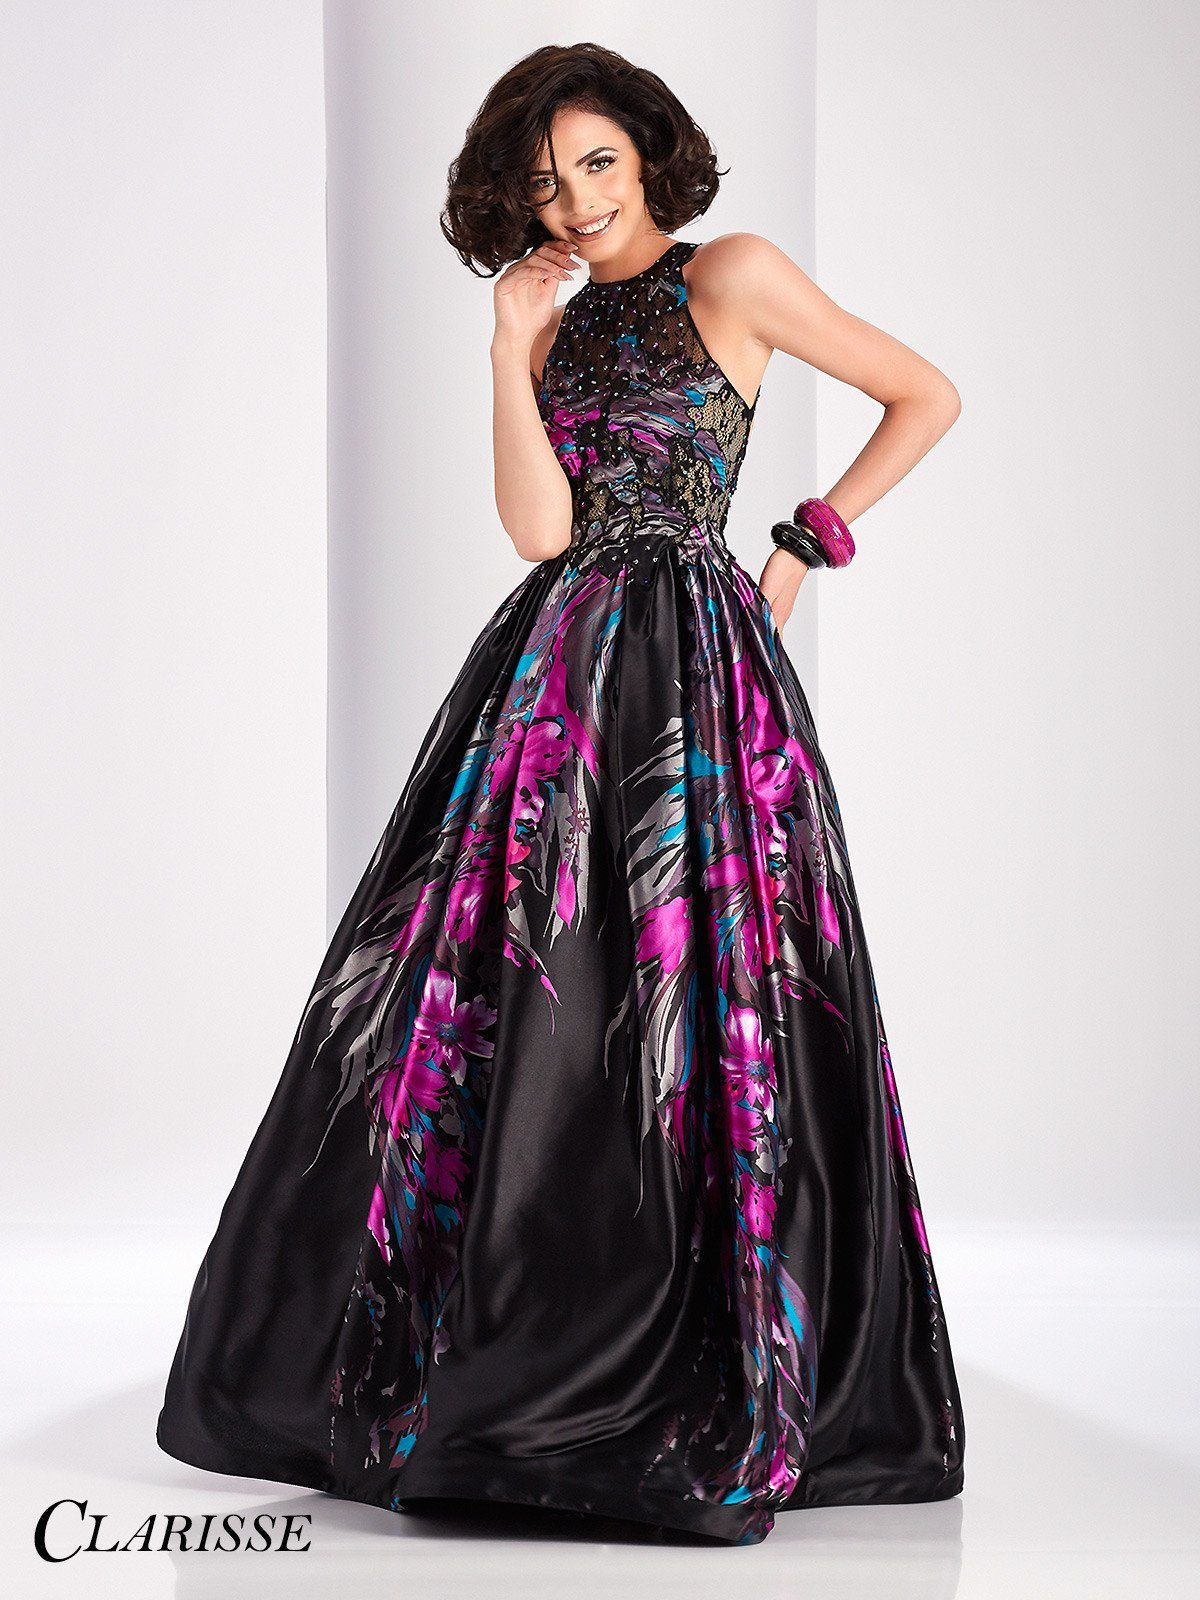 Clarisse prom blackprint open back ball gown prom dress ball